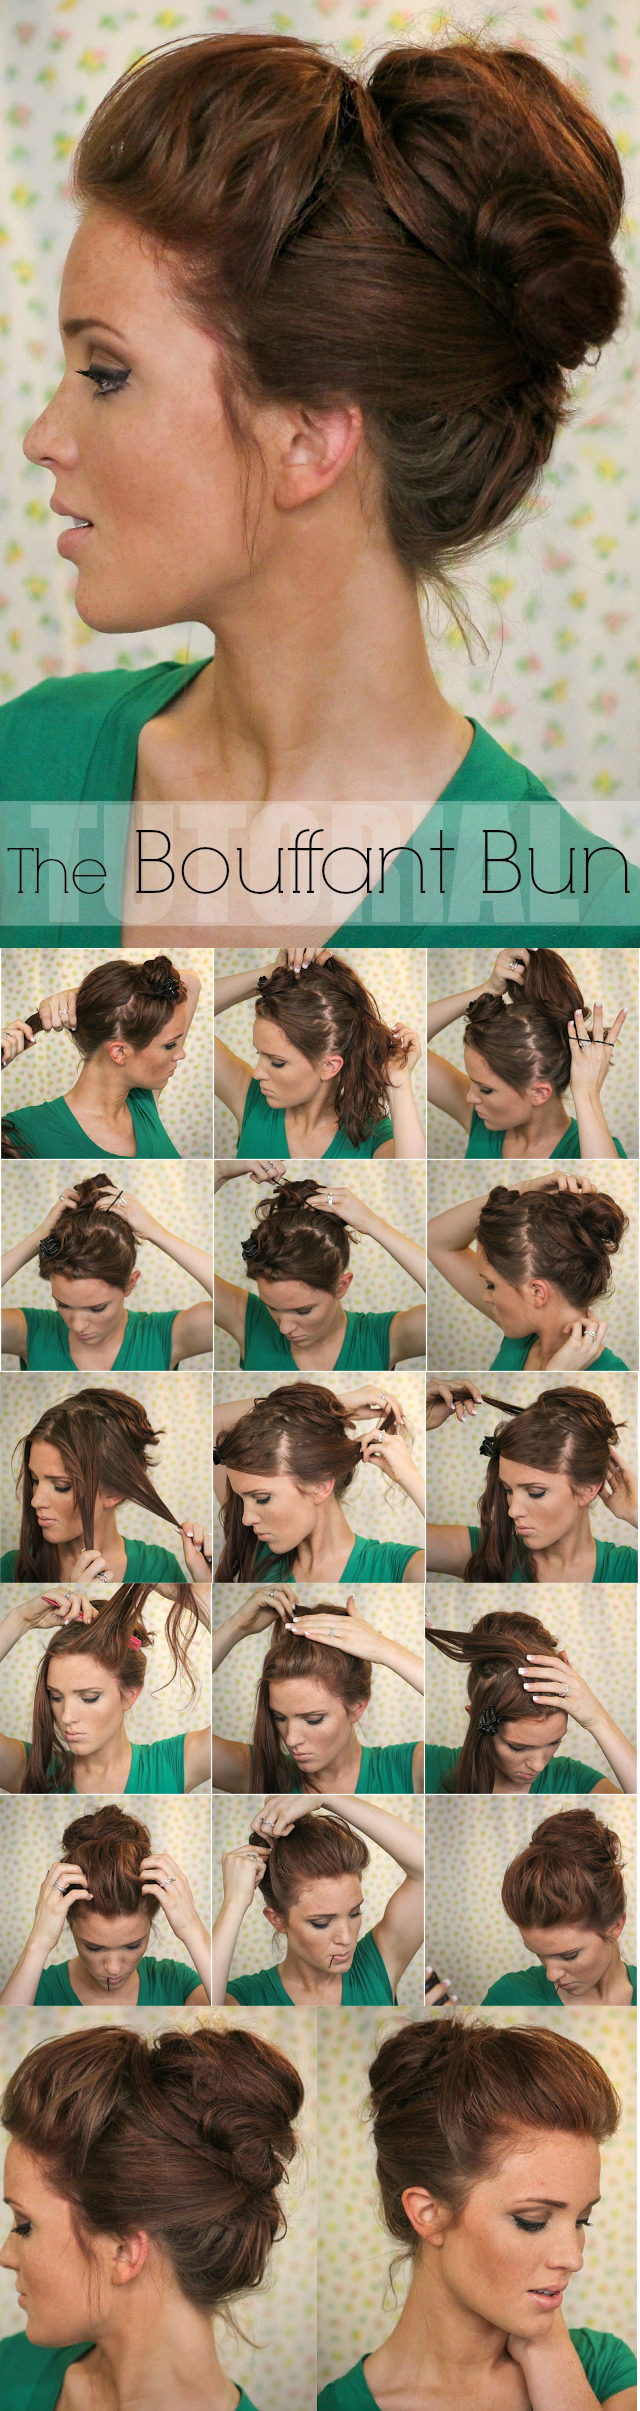 Awe Inspiring 13 Rather Simple Bun Hairstyles Tutorials For 2014 Pretty Designs Hairstyles For Women Draintrainus